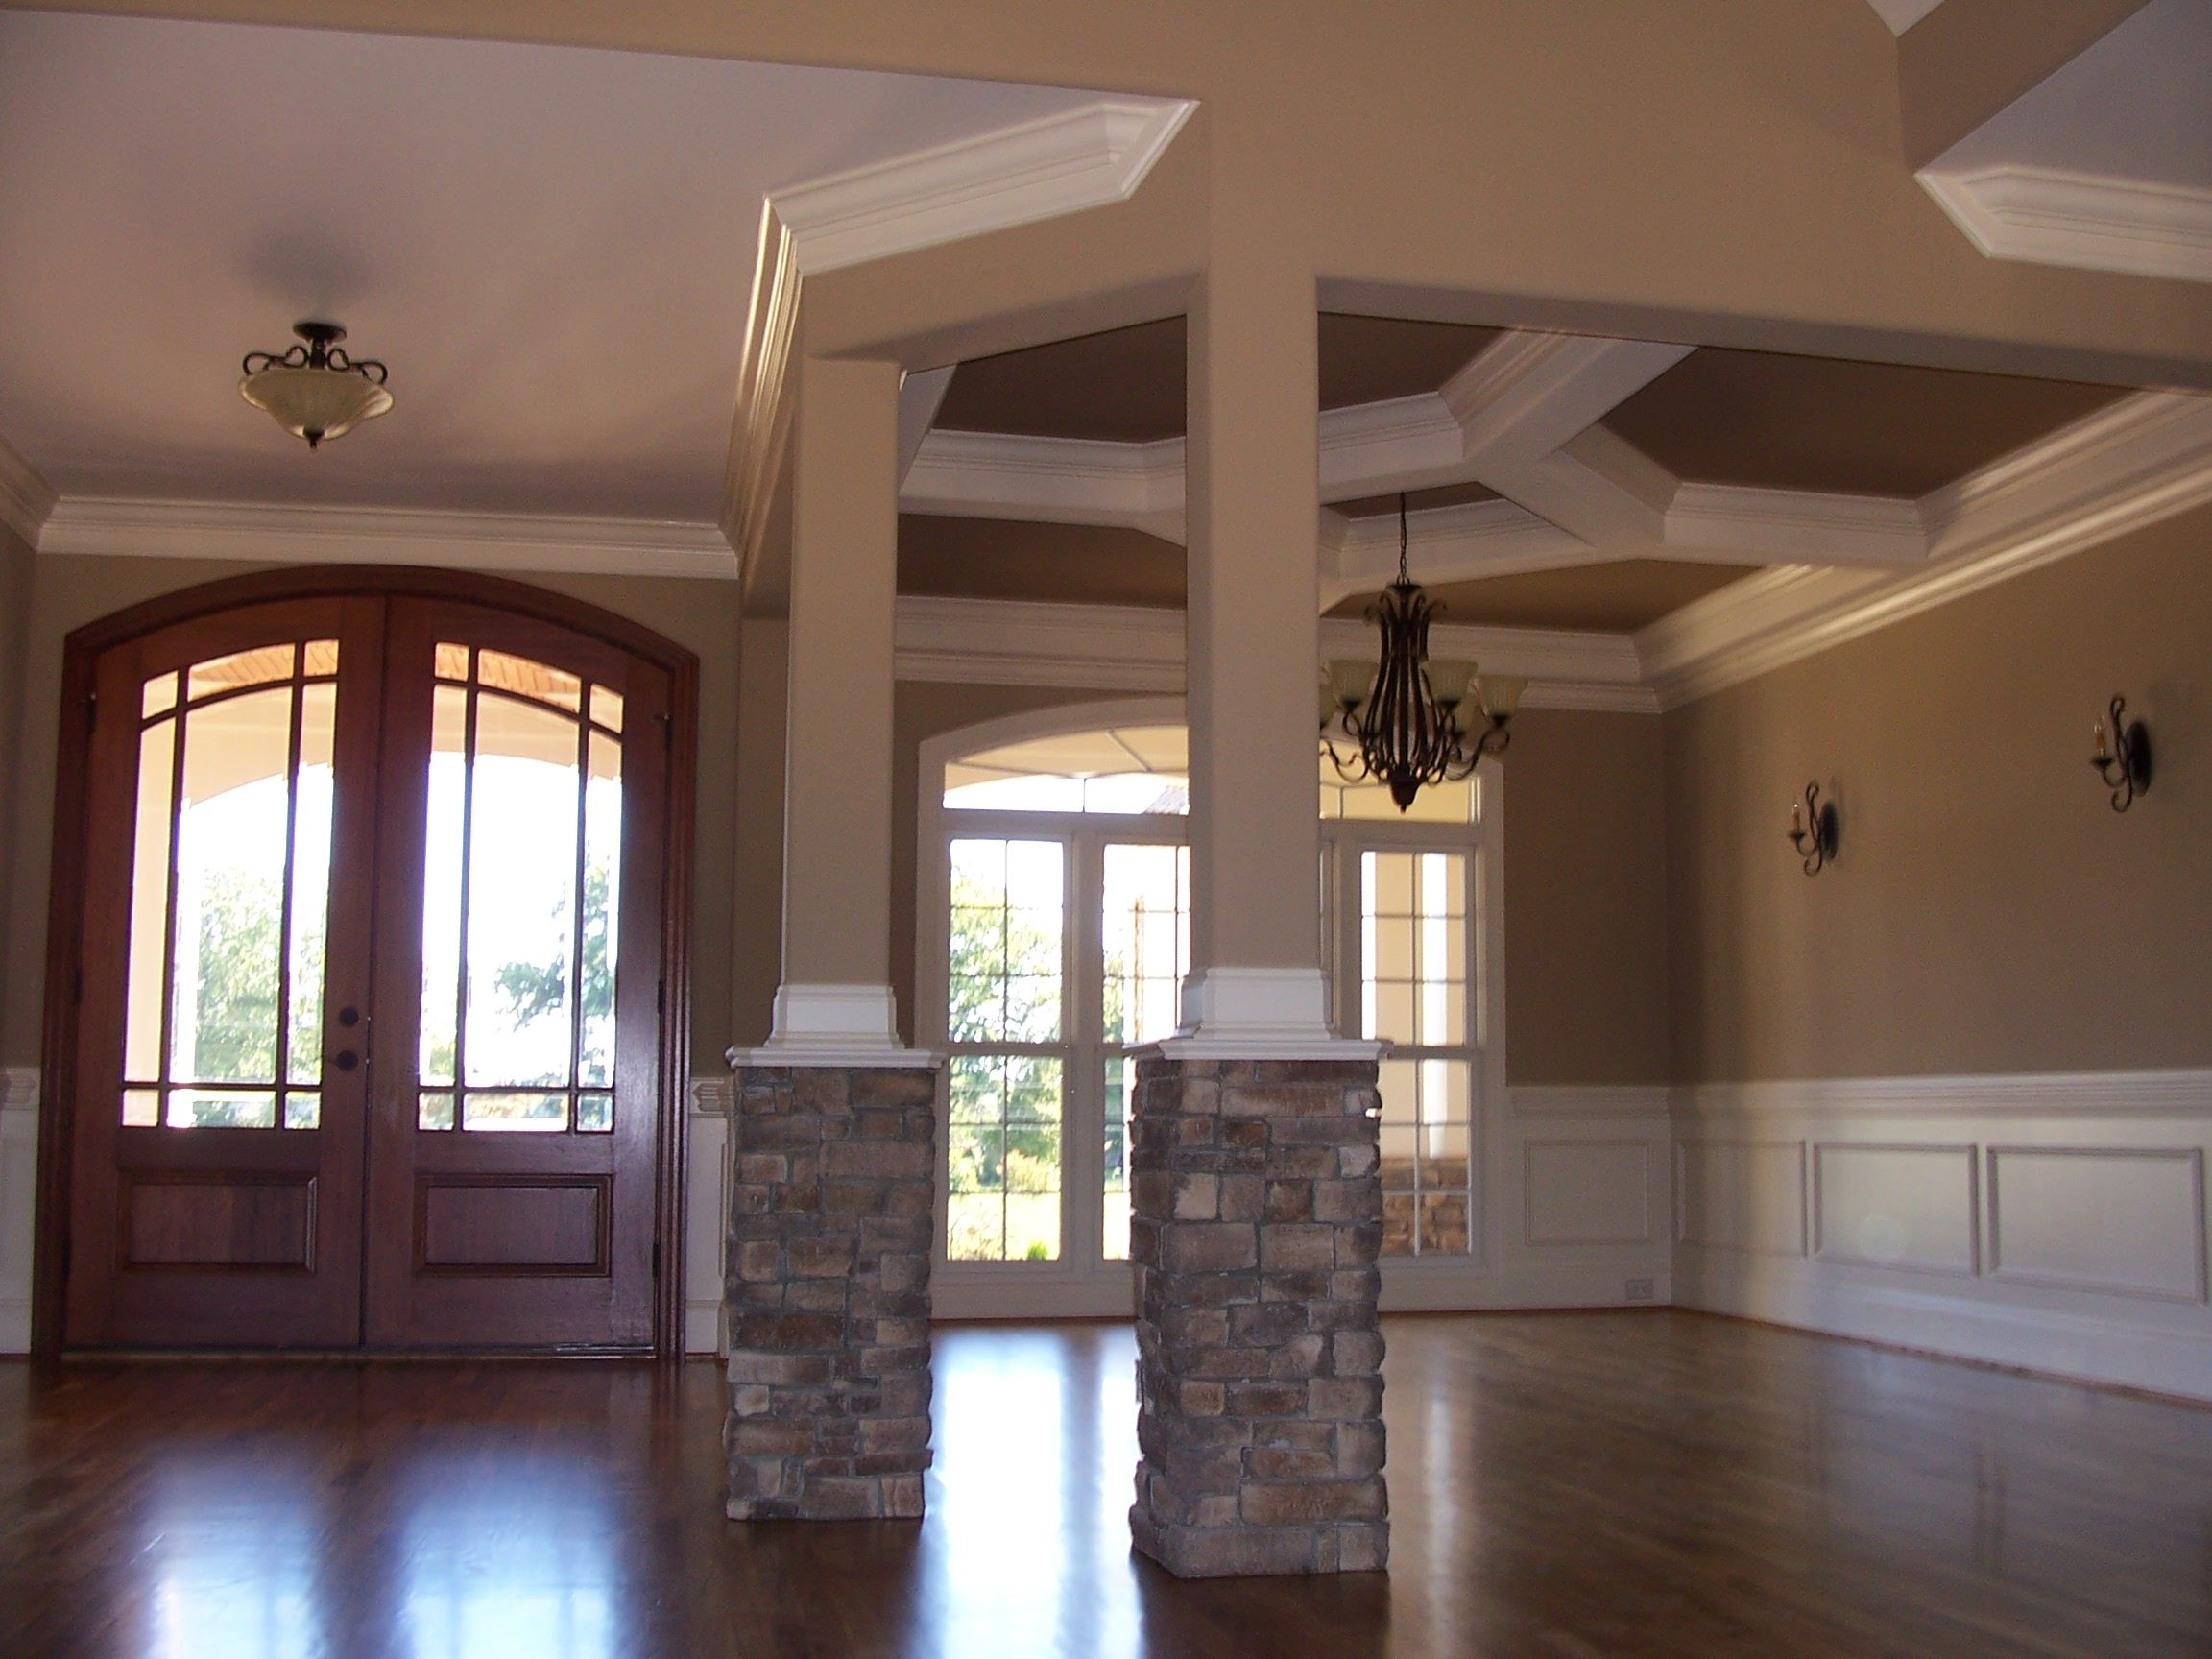 Home Interior Painting Exterior Pictures Of Interior Paint Colors  Phone 704.746.8170 ~ Fax .